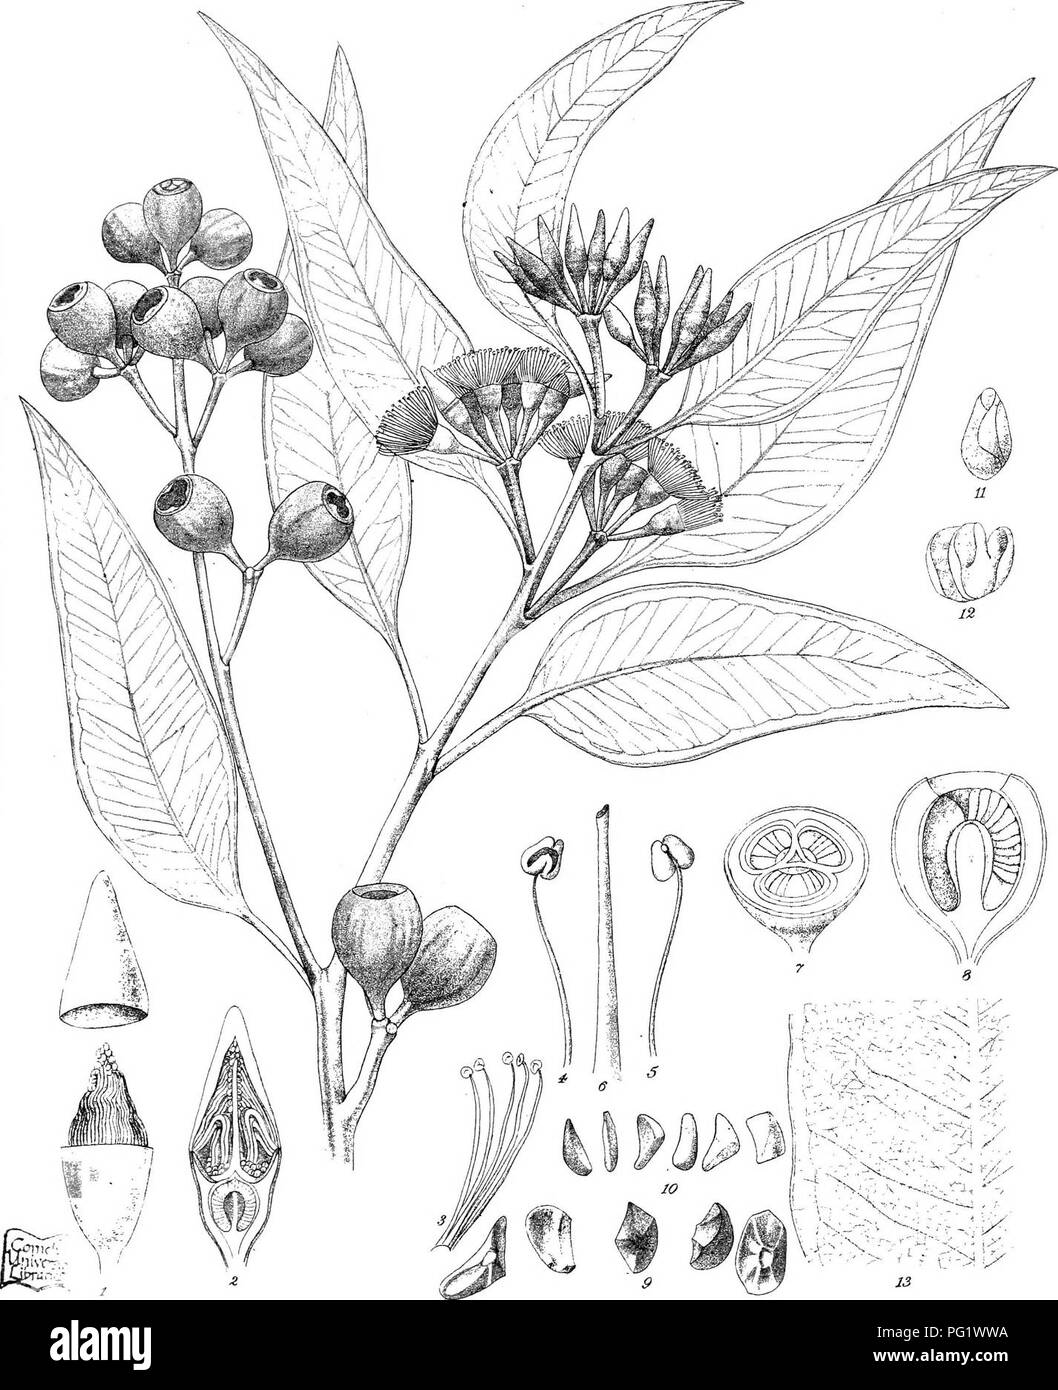 . Eucalyptographia. A descriptive atlas of the eucalypts of Australia and the adjoining islands;. Eucalyptus; Botany. TodTidel. CTrsead. S^C'^LiWi F.tK iirexit S^aamliao eo7Pr:r.hnS l-'fiiC!:. Weis !i(@ii]l|]ptei smfiiiiiiiii, Smith.. Please note that these images are extracted from scanned page images that may have been digitally enhanced for readability - coloration and appearance of these illustrations may not perfectly resemble the original work.. Mueller, Ferdinand von, 1825-1896. Melbourne, J. Ferres, Govt. Print; [etc. ,etc. ] - Stock Image